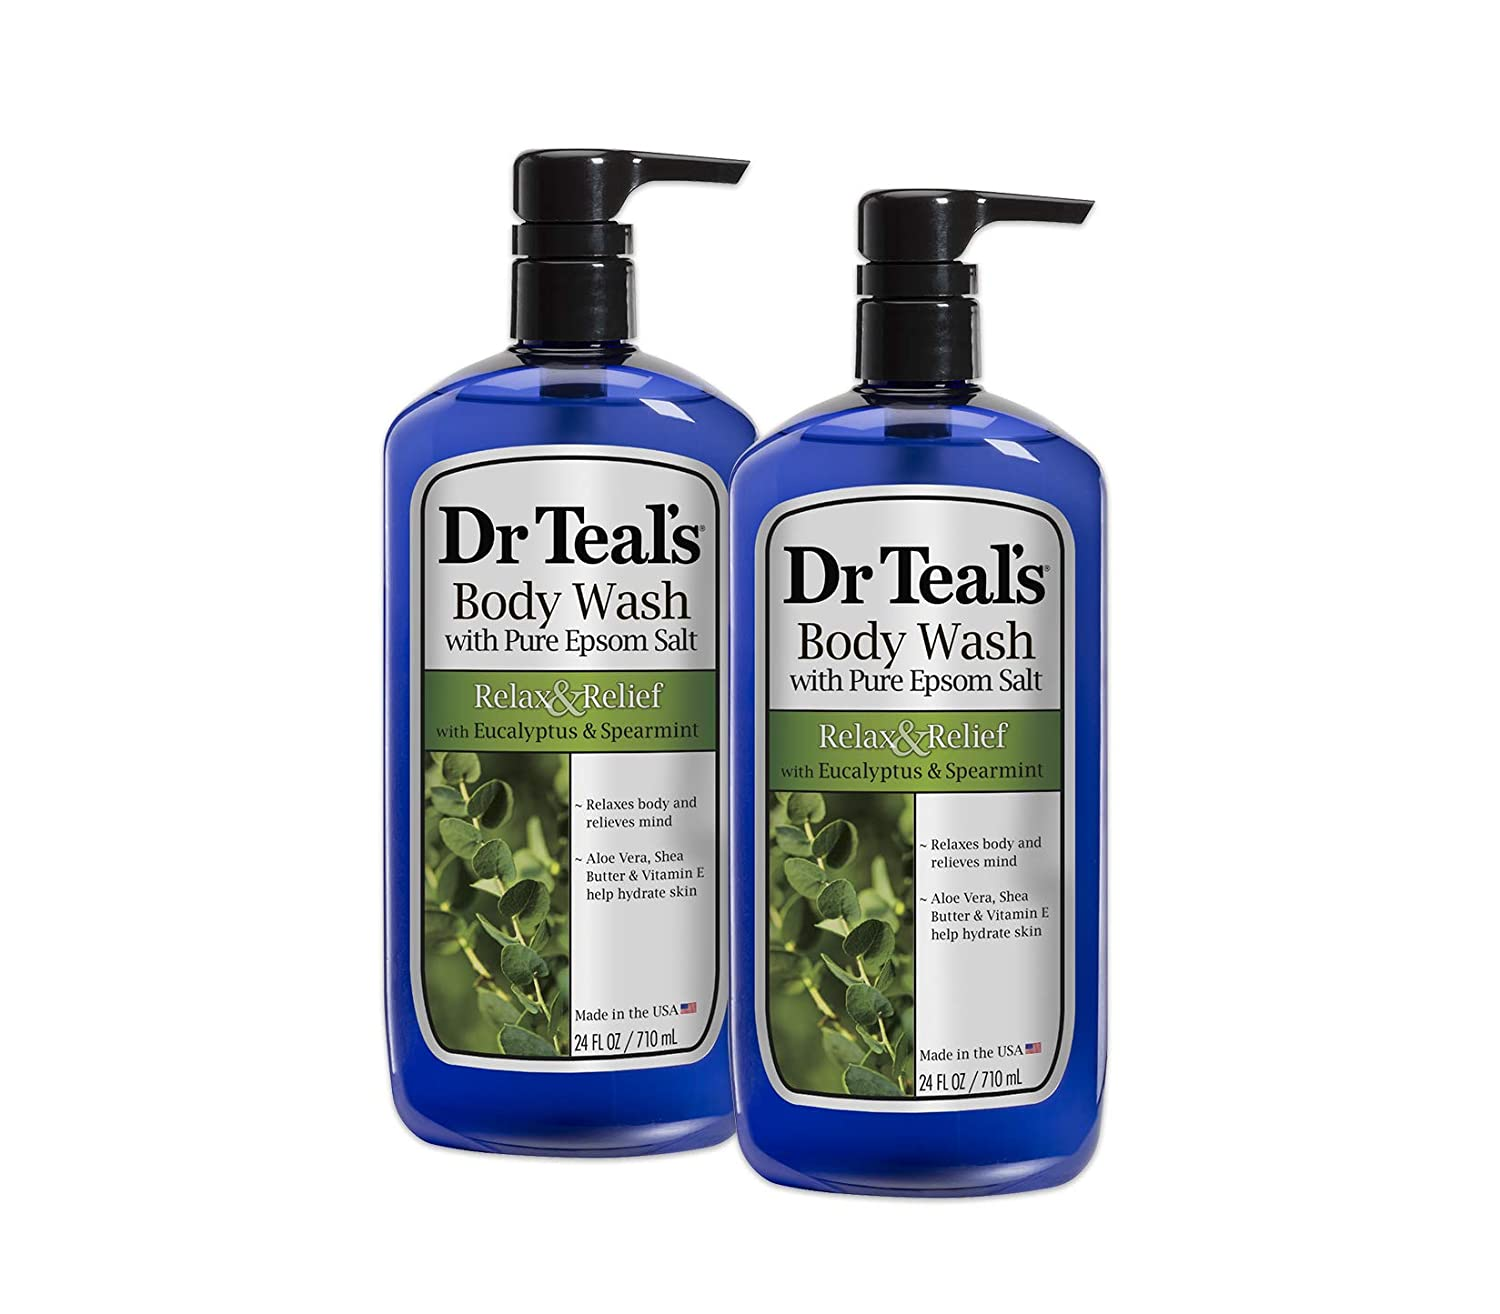 Dr Teal's Body Wash, Relax & Relief with Eucalyptus & Spearmint 24 oz (Pack of 2) Dr Teal's Body Wash Dr. Teal's